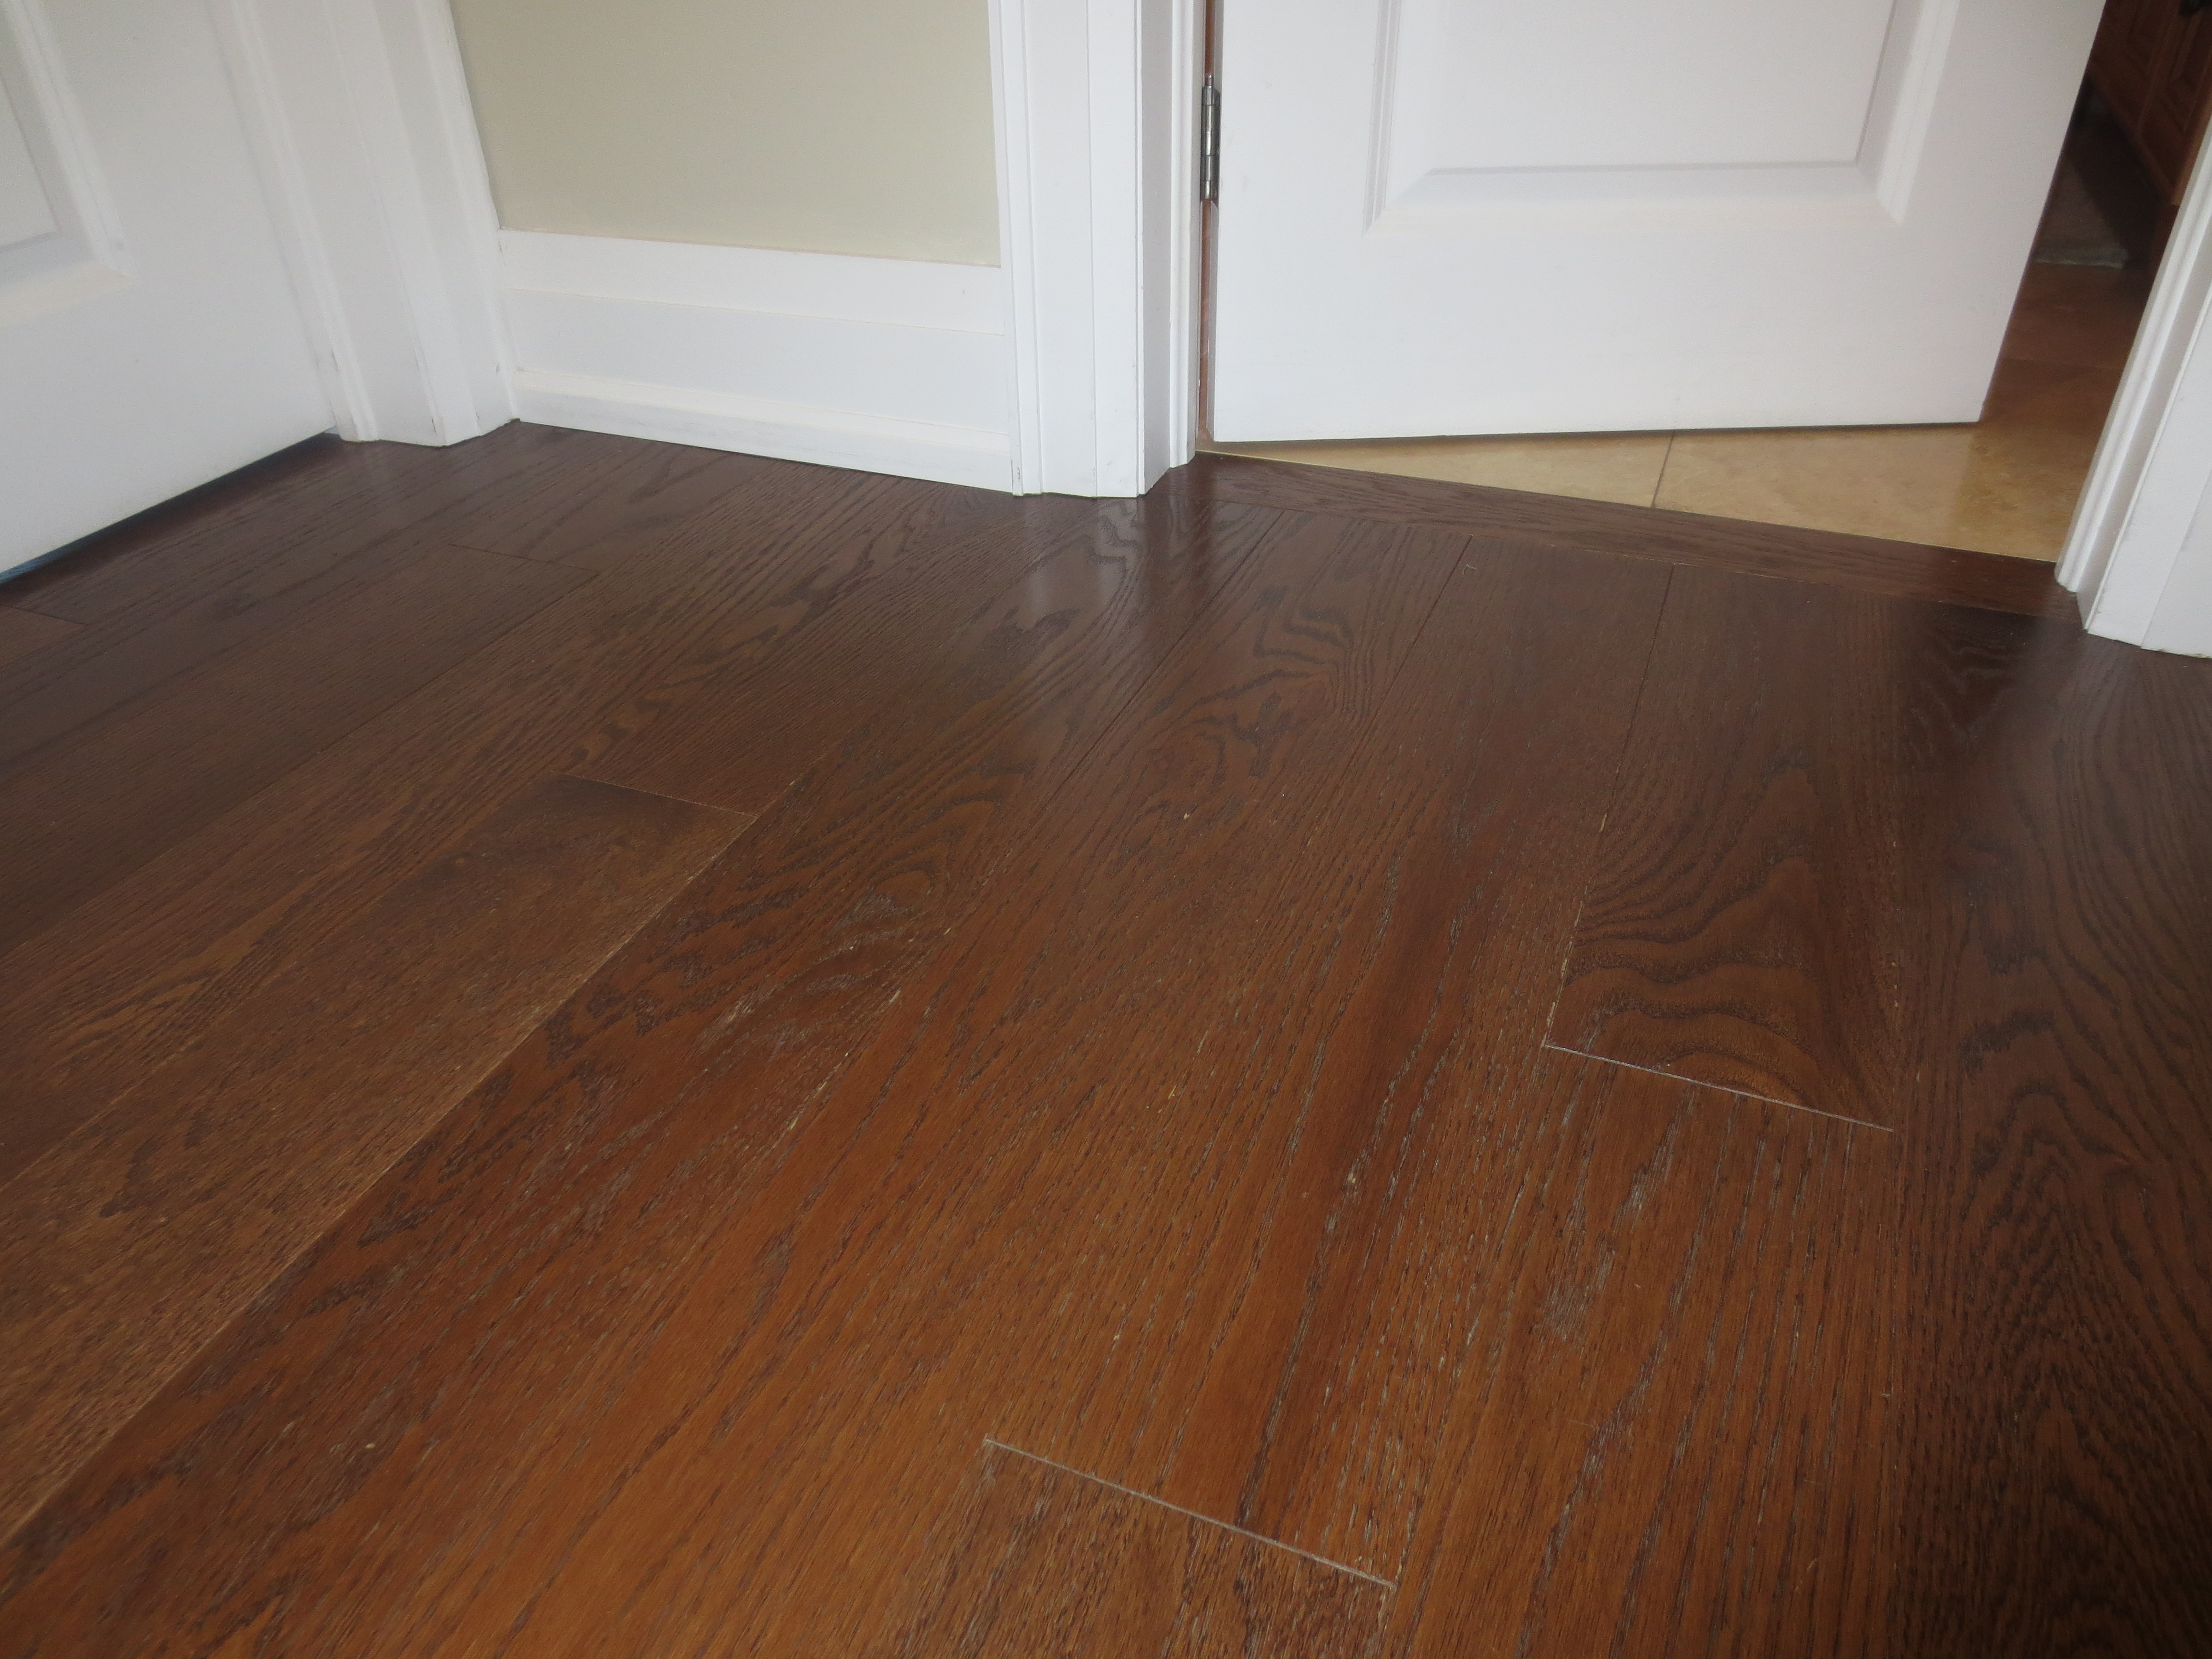 installers flooring plank the fort experts serving asp wood choose in covering installation laminate northeast s wayne indiana proudly michael floor hd best